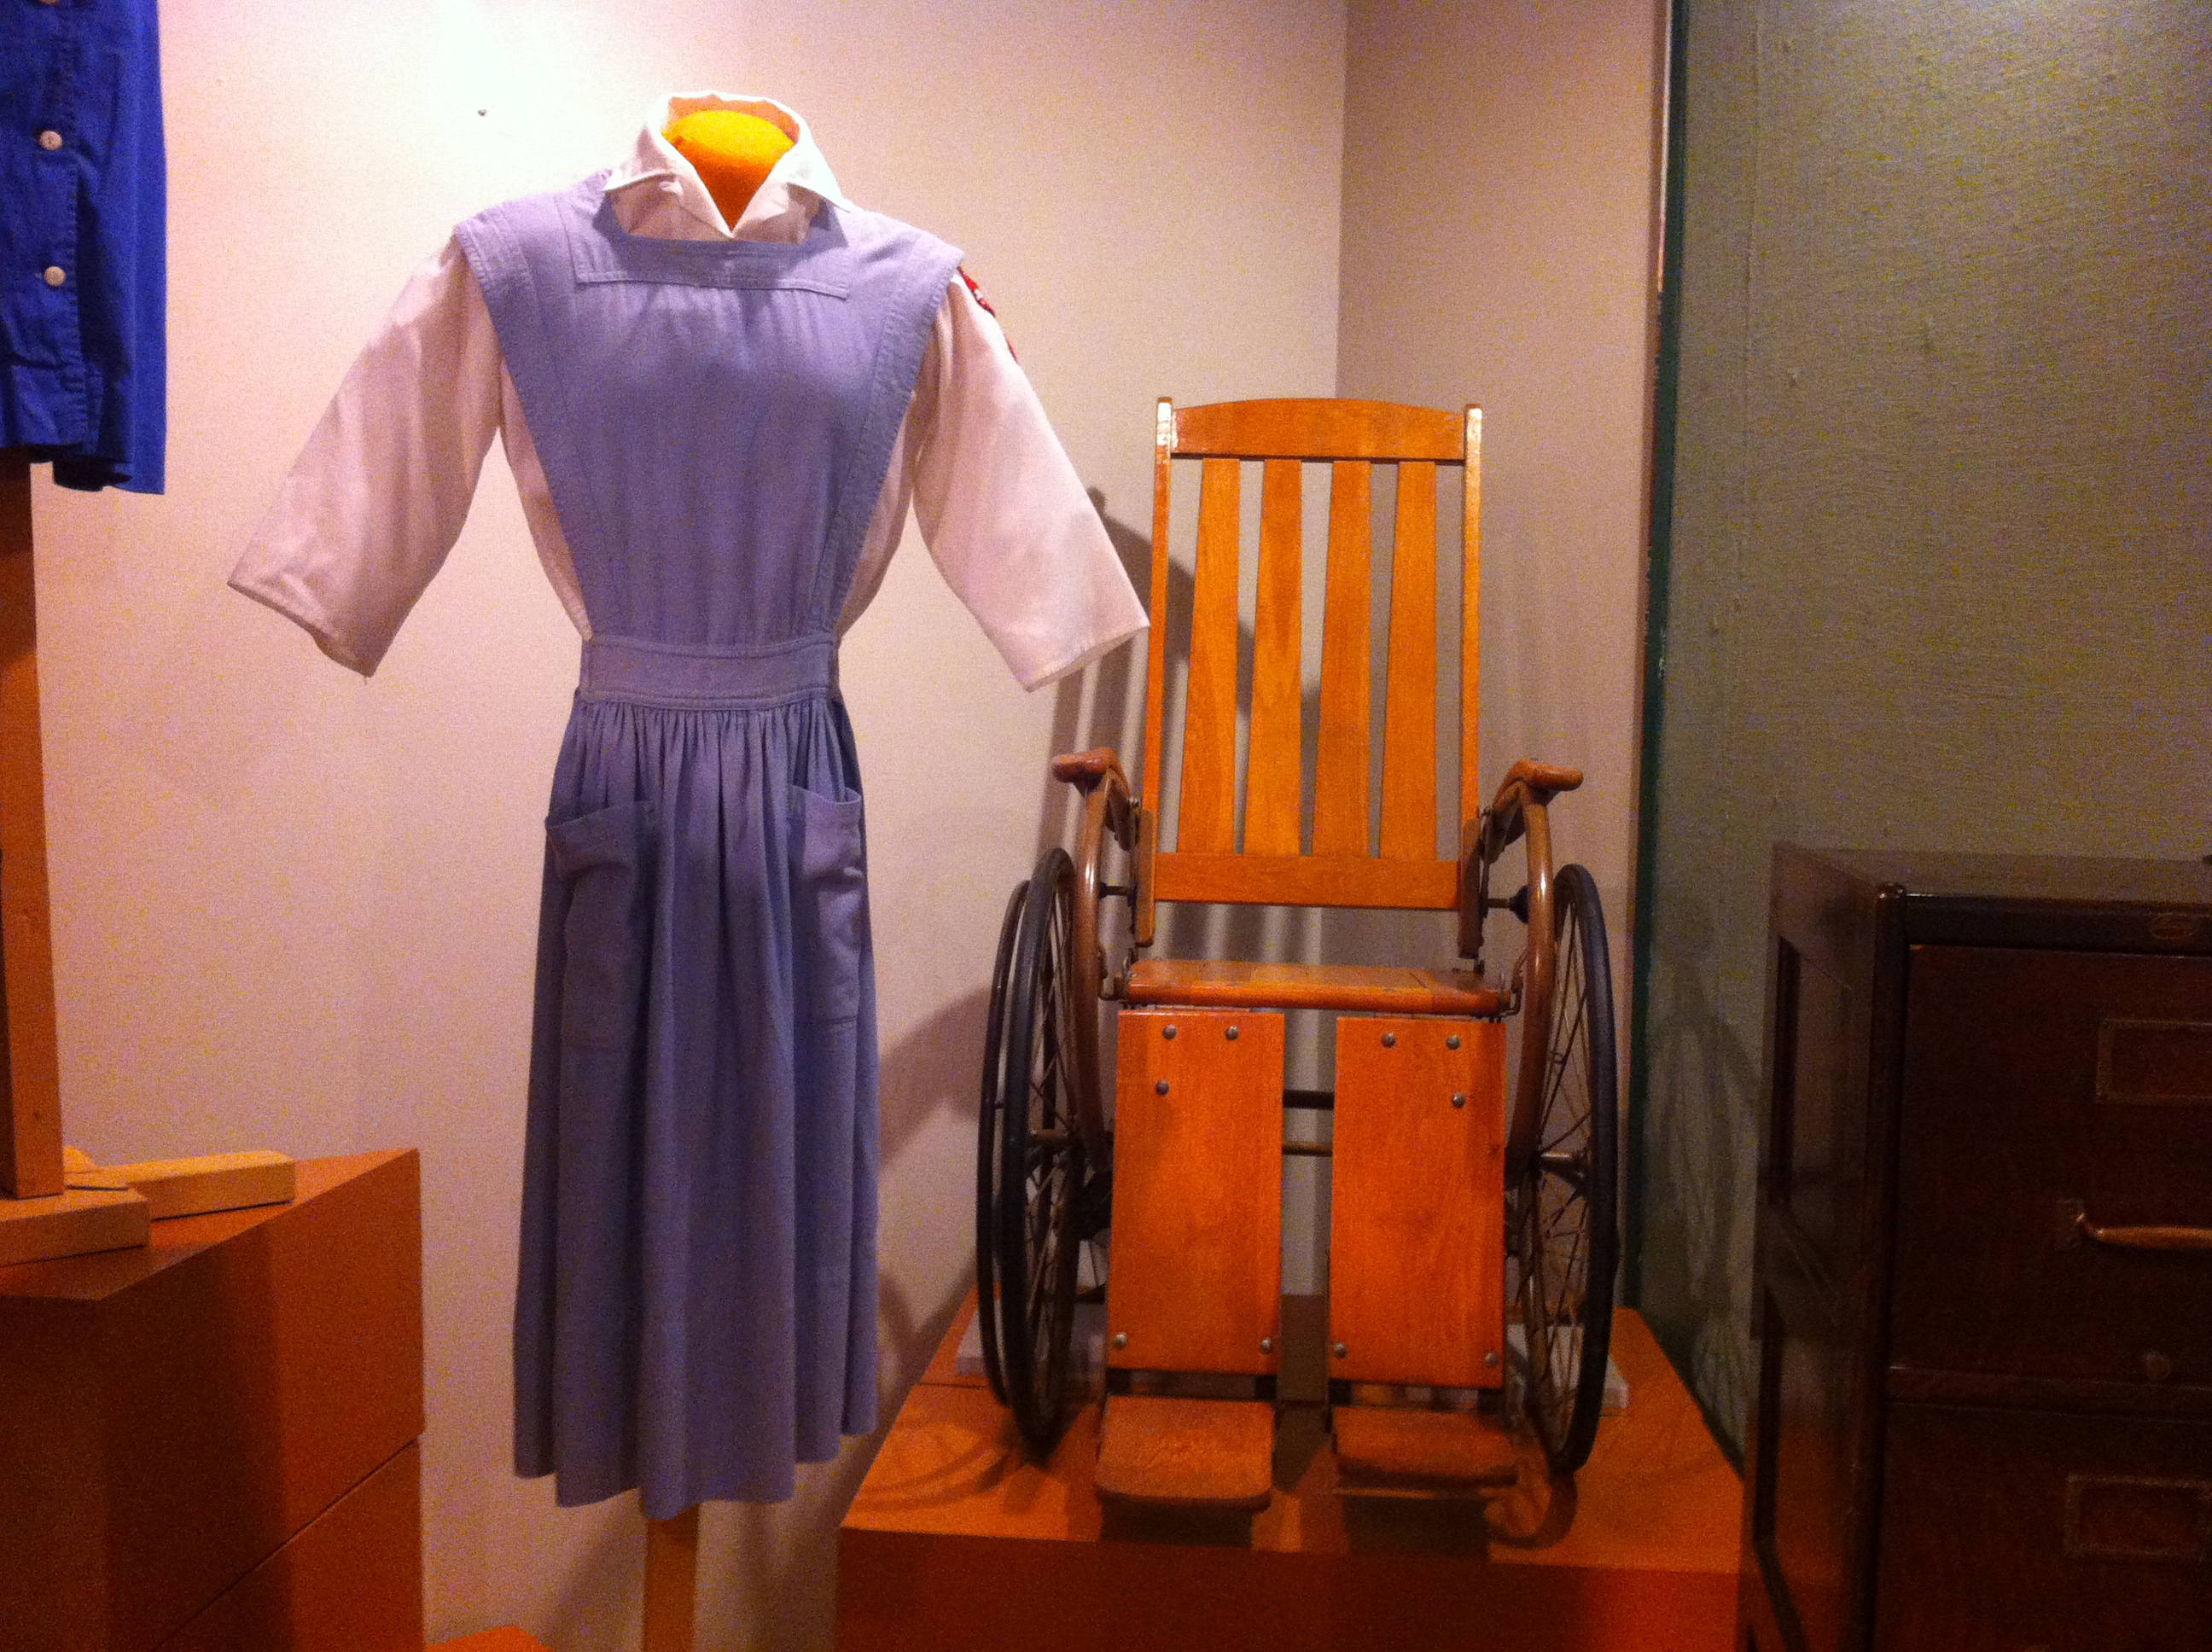 Red Cross Volunteer uniform worn by Jane Jensen at McCune-Brooks Hospital and wooden hospital wheelchair donated to Powers Museum in honor of Dr. Everett Powers when the museum opened. Powers was Chief of Staff when the hospital opened in 1929.